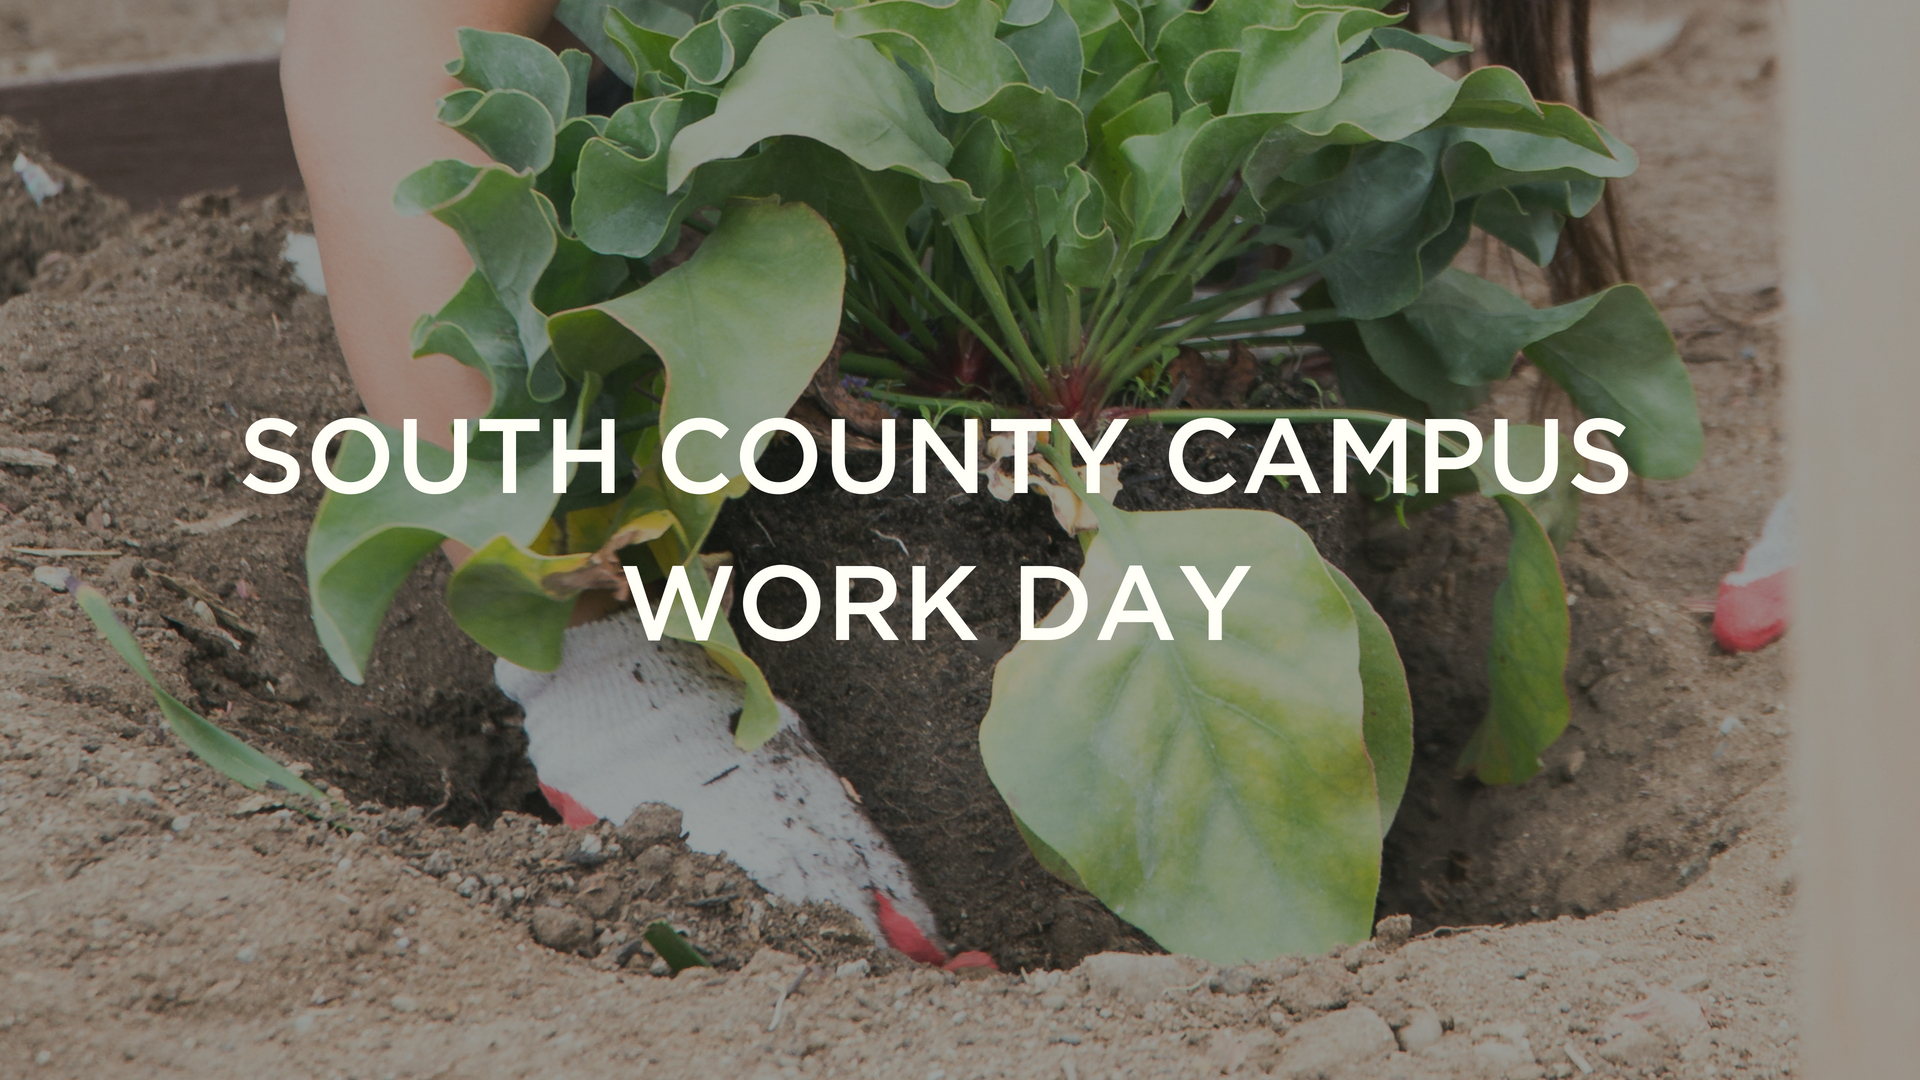 SOUTH COUNTY CAMPUSWORK DAY.jpg